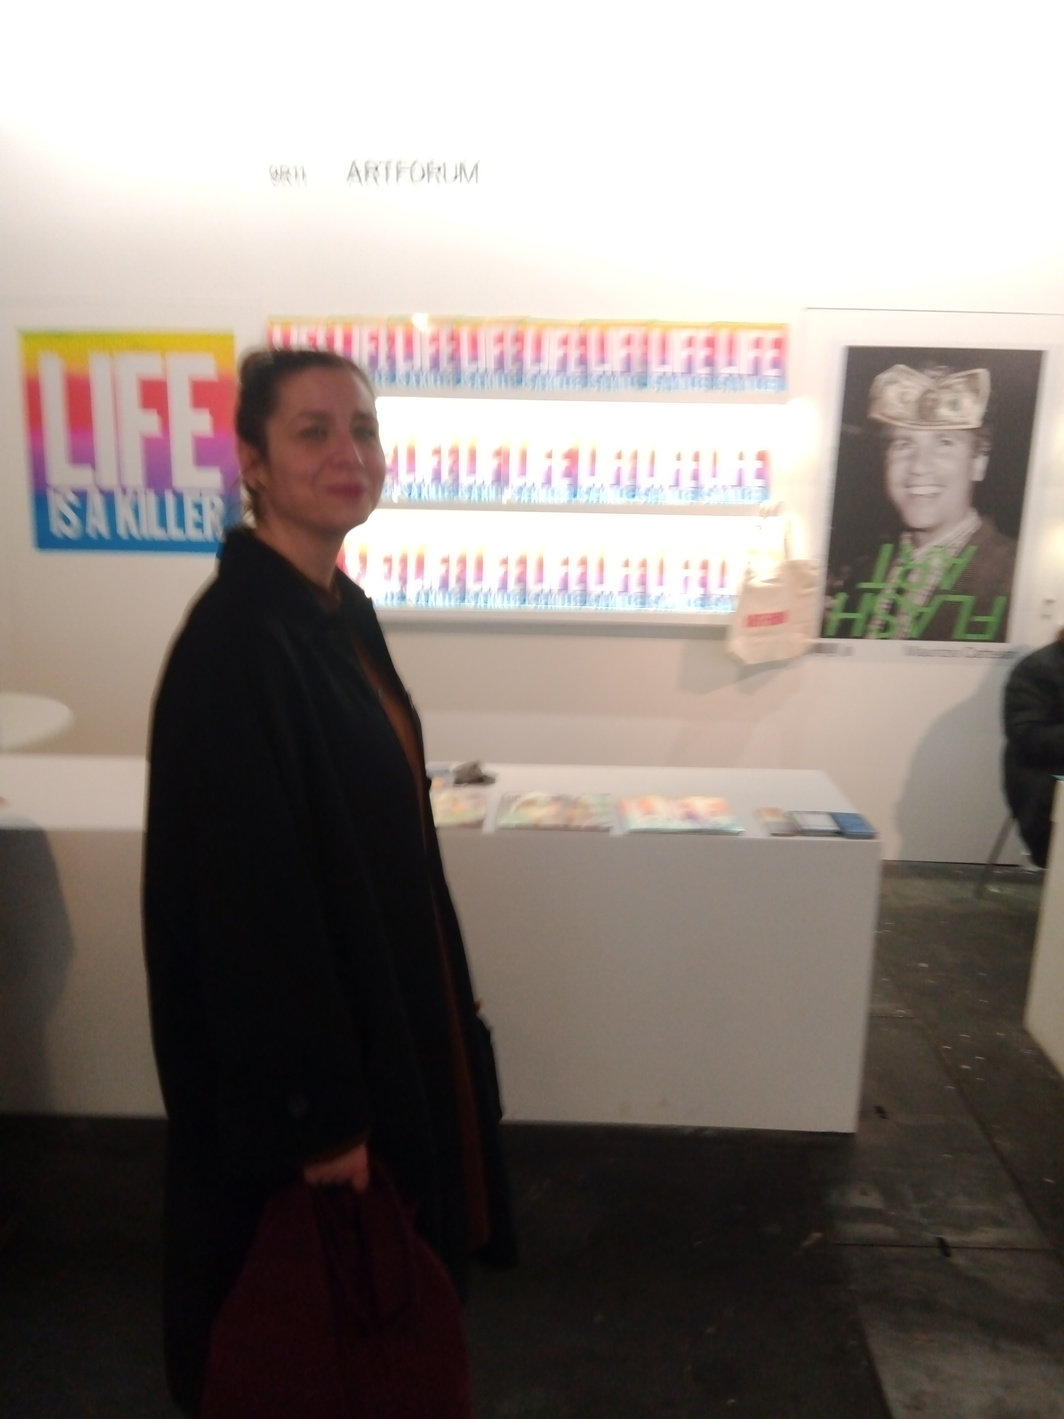 Bea Espejo, arts editor at El País, in front of Artforum's stand at ARCO.